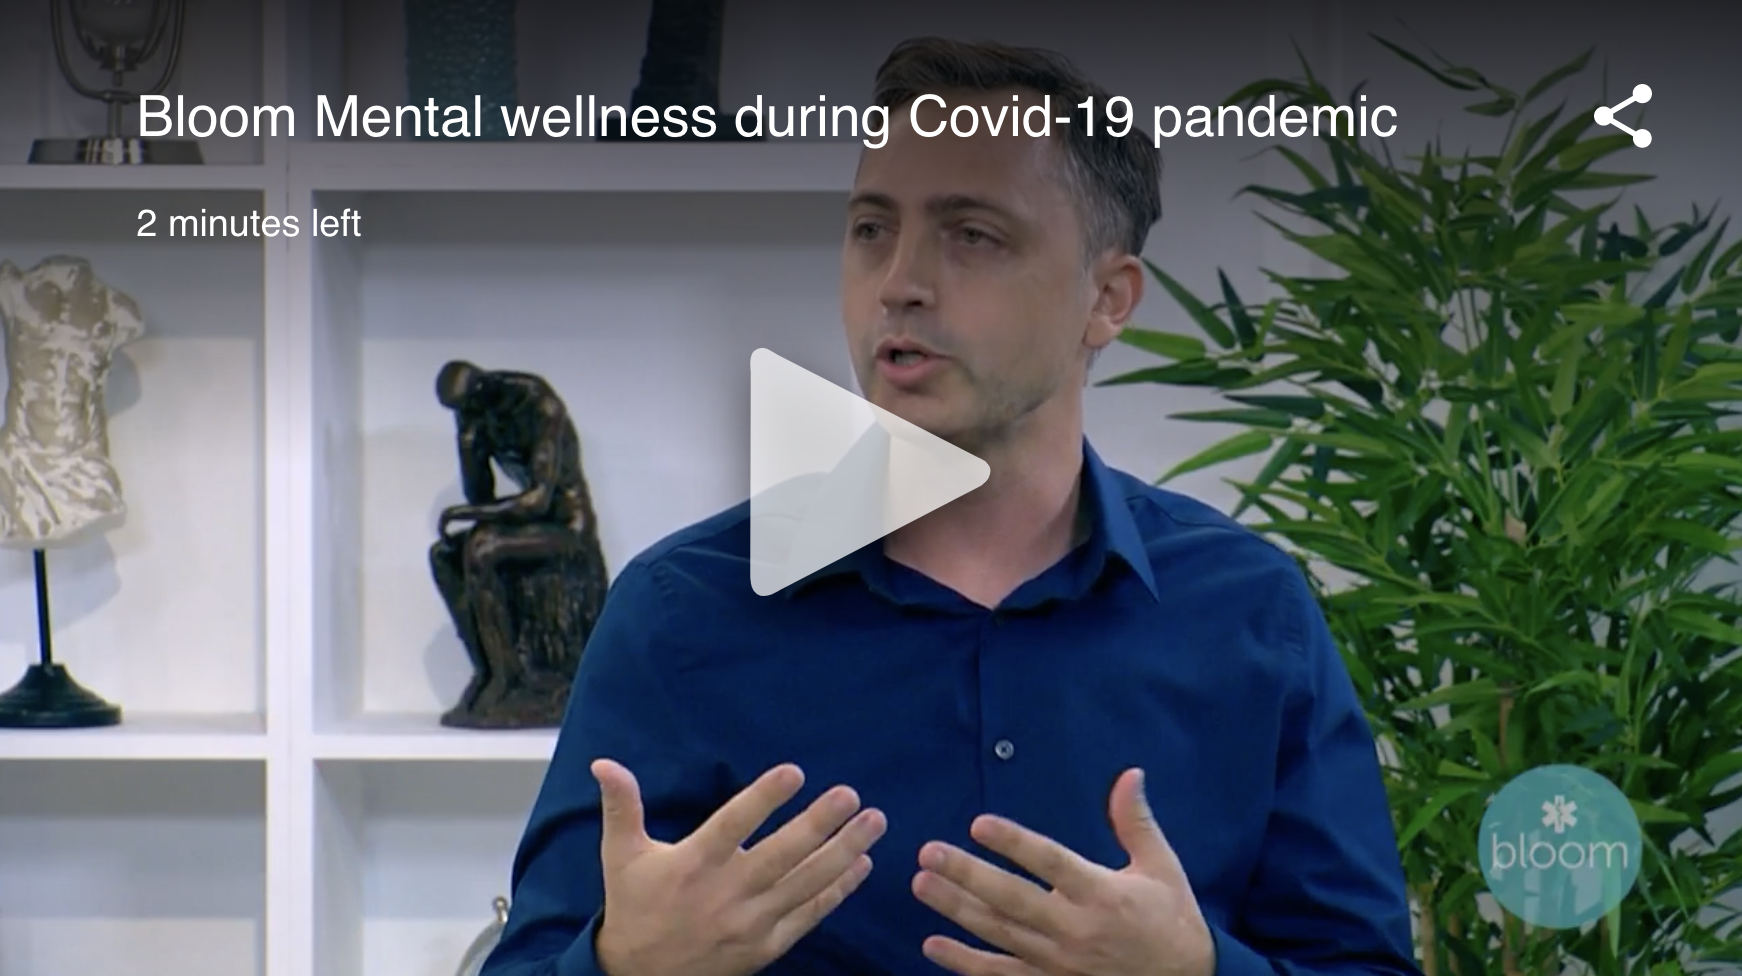 bloom mental wellness during covid 19 pandemic